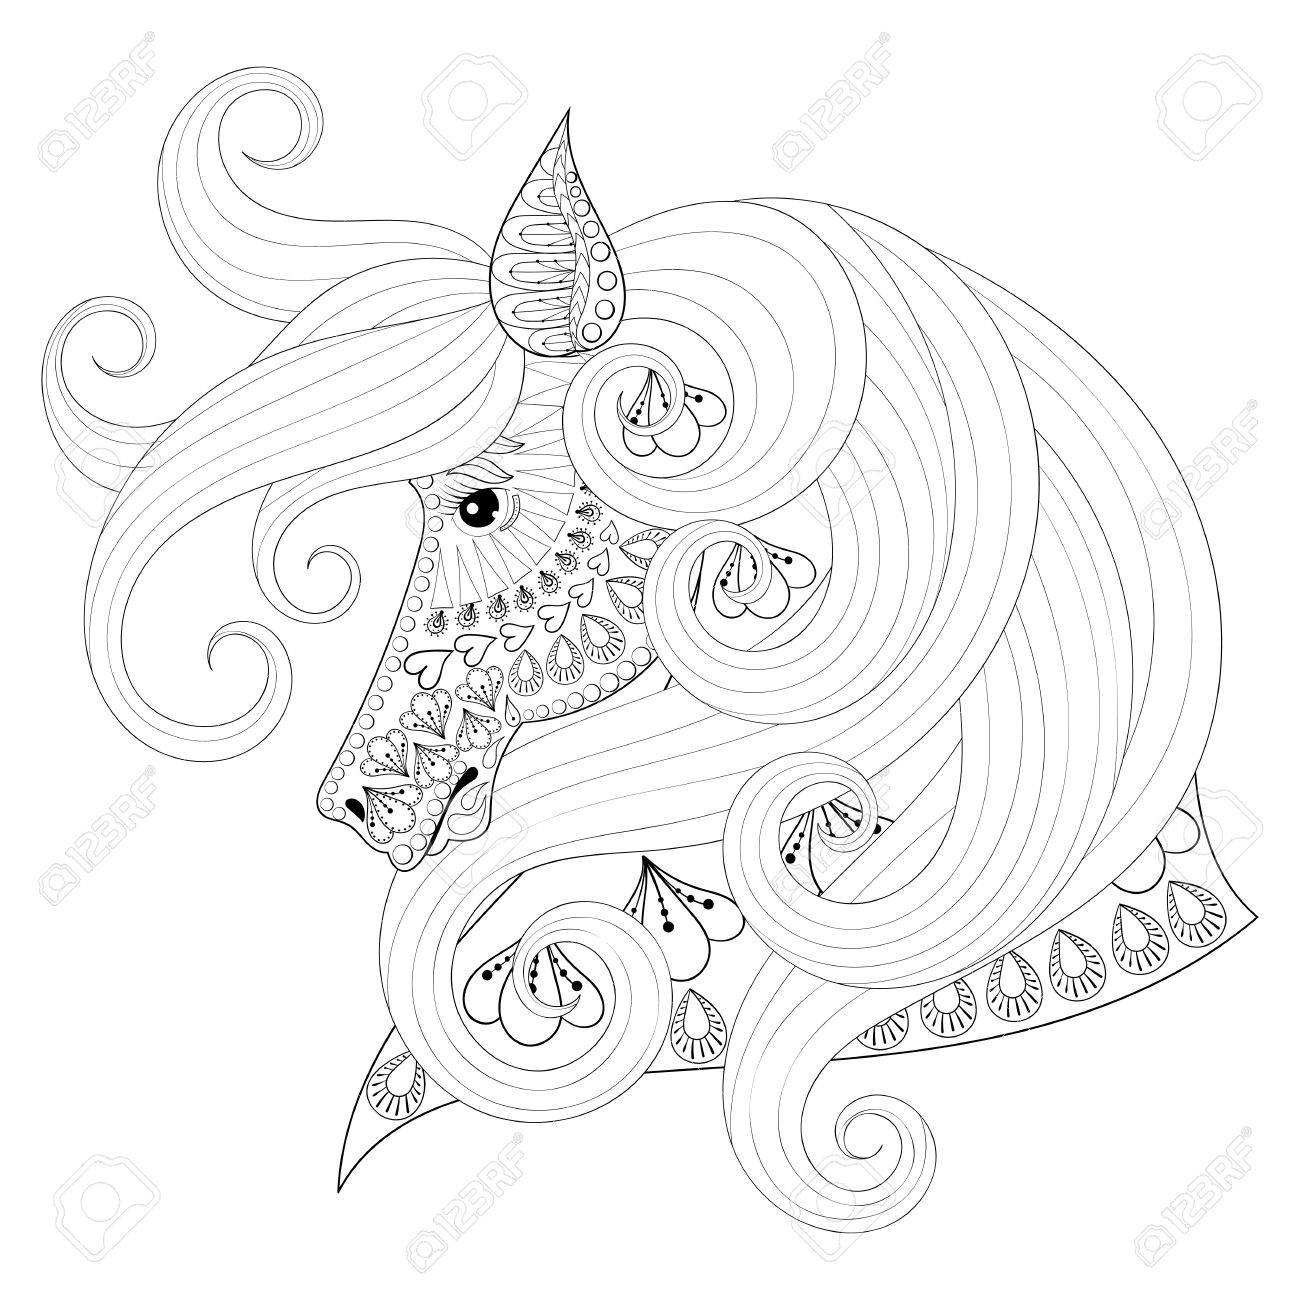 1300x1300 Hand Drawn Ornamental Horse For Adult Coloring Pages, Post Card